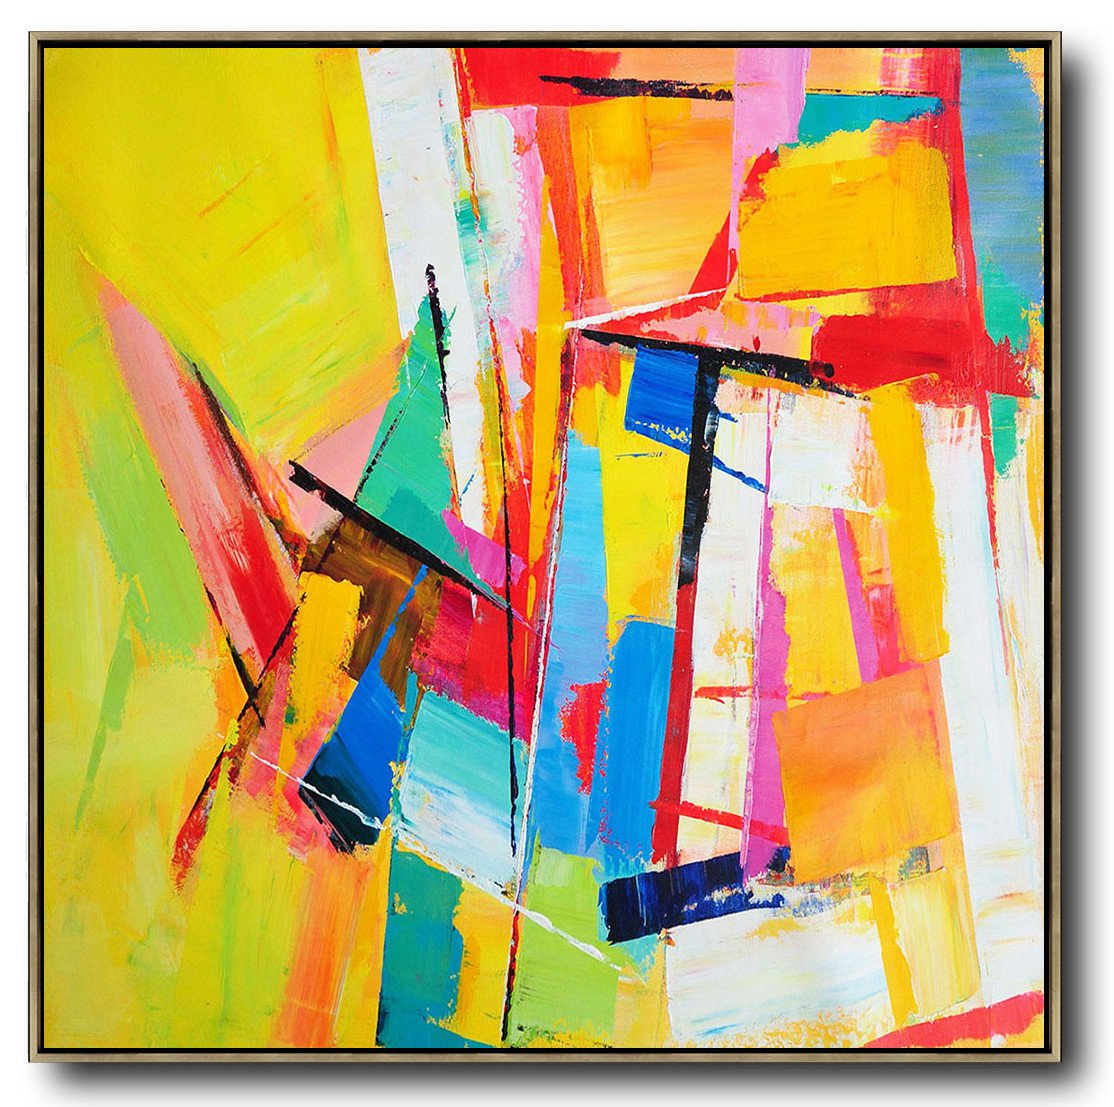 Handmade Painting Large Abstract Art,Oversized Palette Knife Painting Contemporary Art On Canvas,Huge Abstract Canvas Art,Yellow,Blue,Red,Pink,Light Green.etc